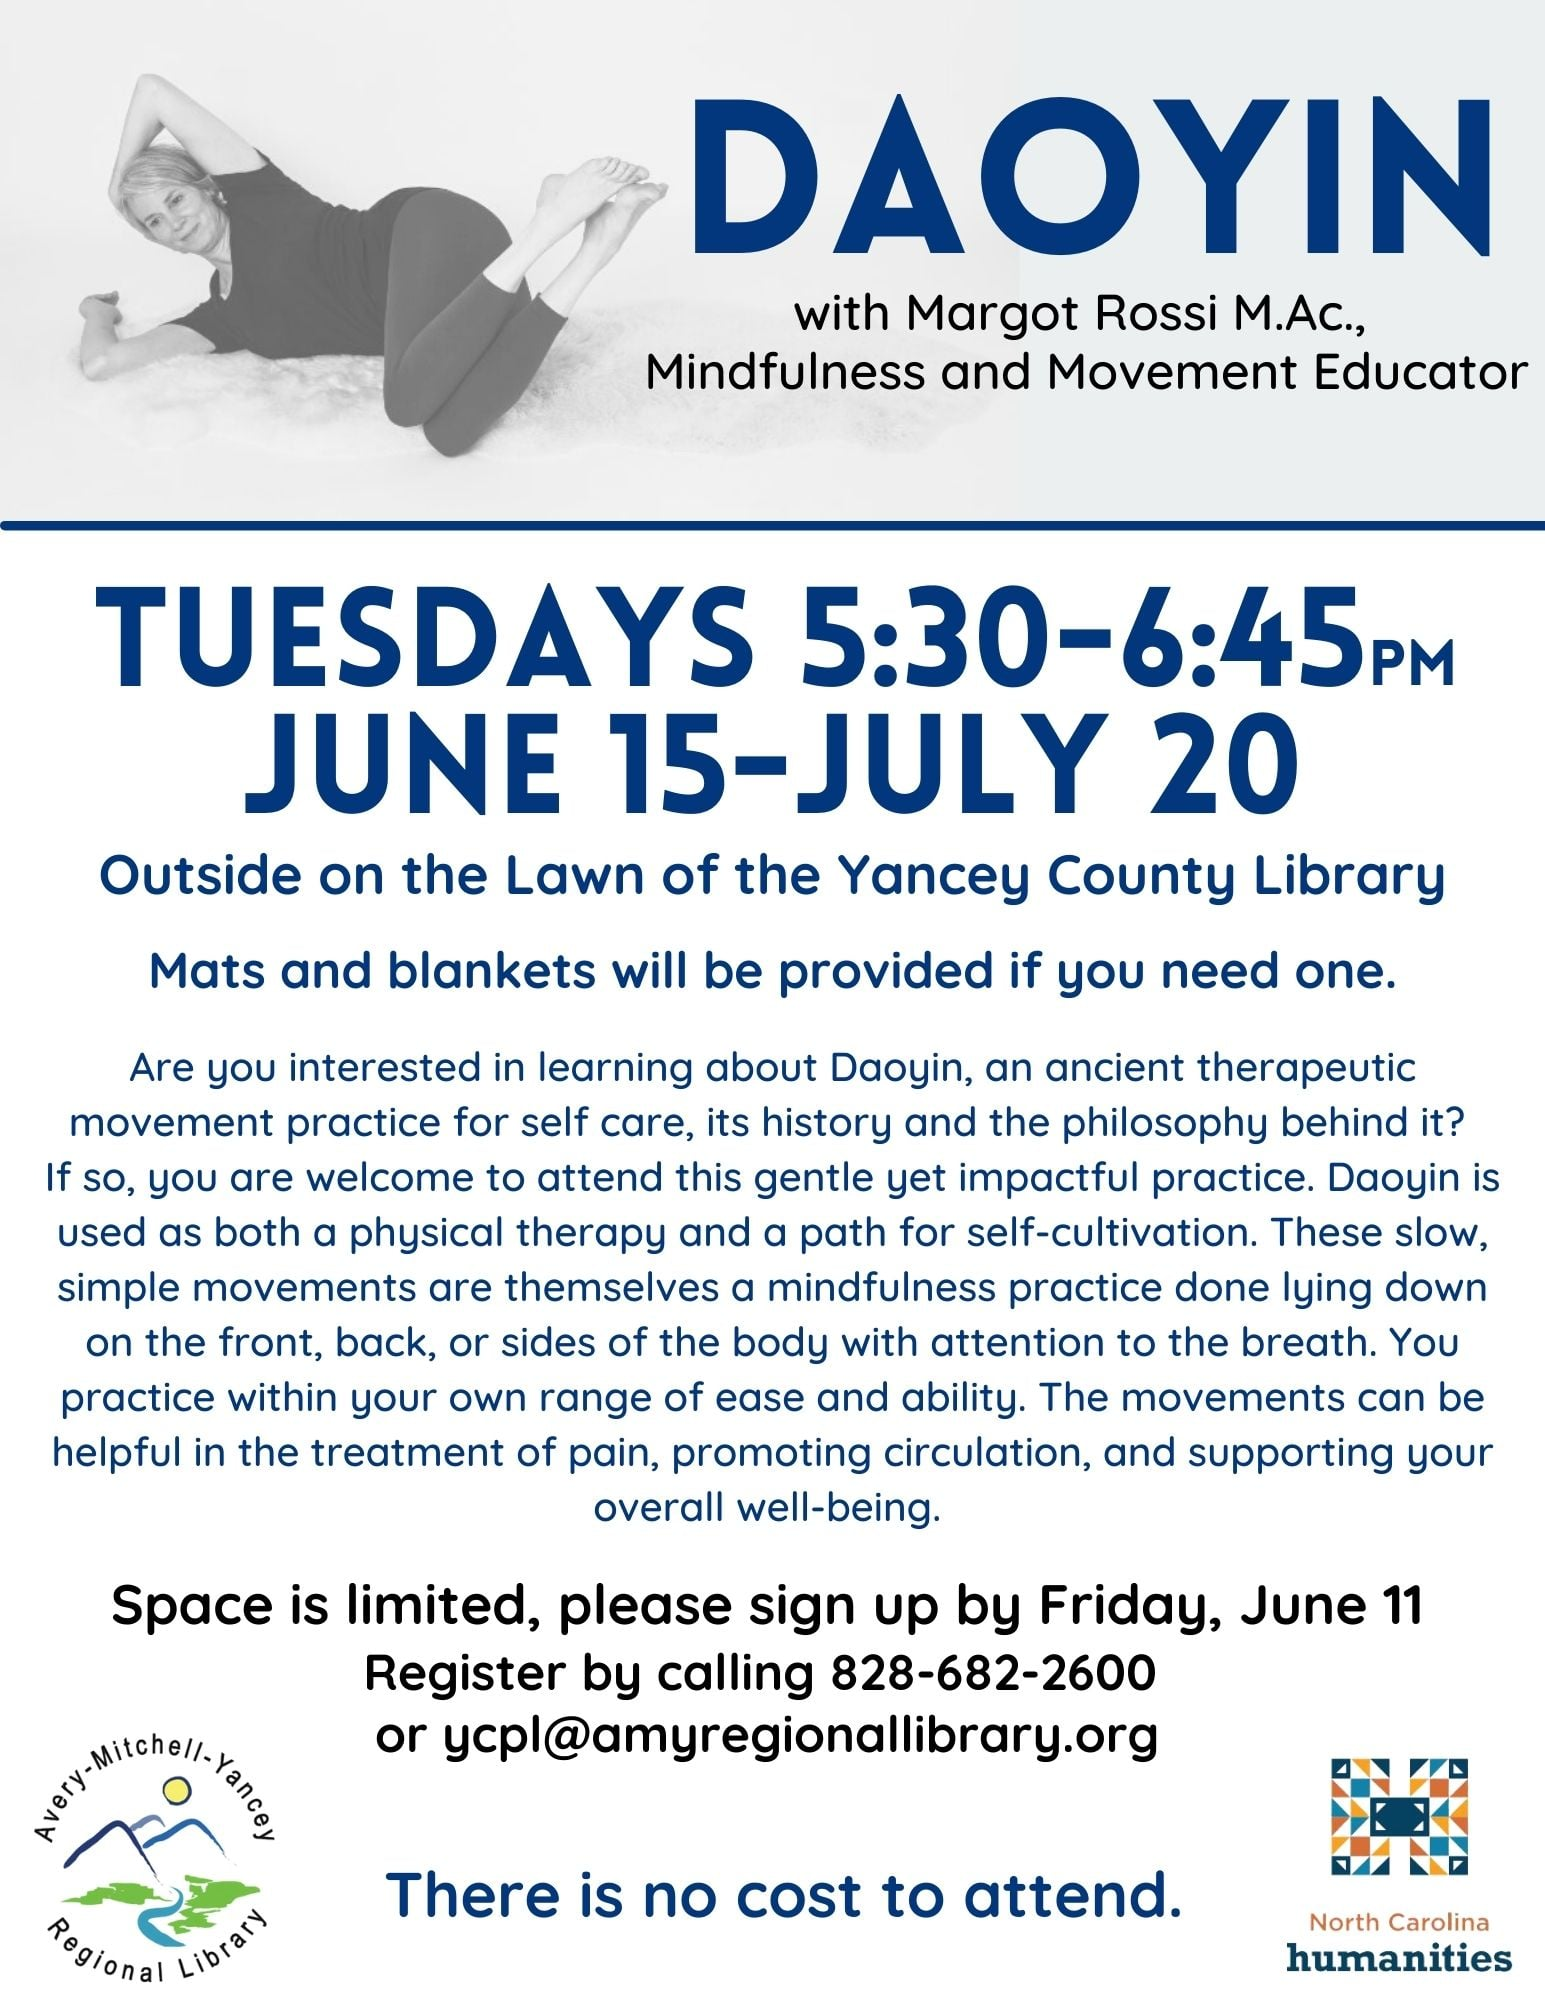 Image of instructor lying down and demonstrating Daoyin movement offered Tuesdays, June 15-July 20 at Yancey Library from 5:30-6:45